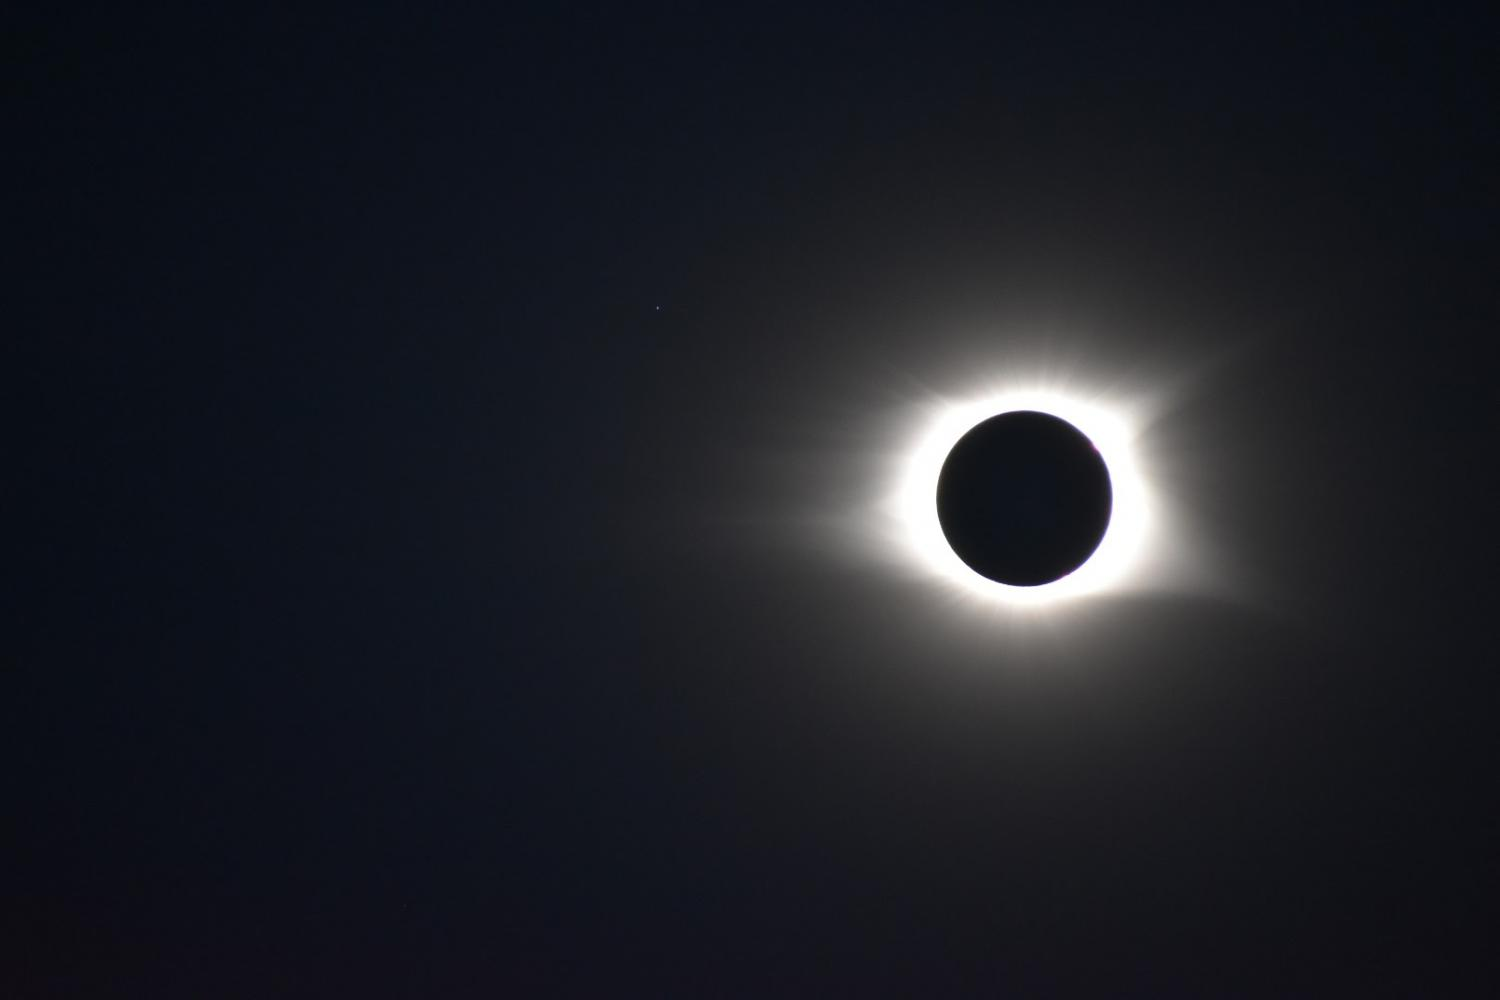 This+photo+of+eclipse+totality+was+taken+by+Jeff+Jones+in+South+Carolina.++Notice+the+star+in+the+upper+left.